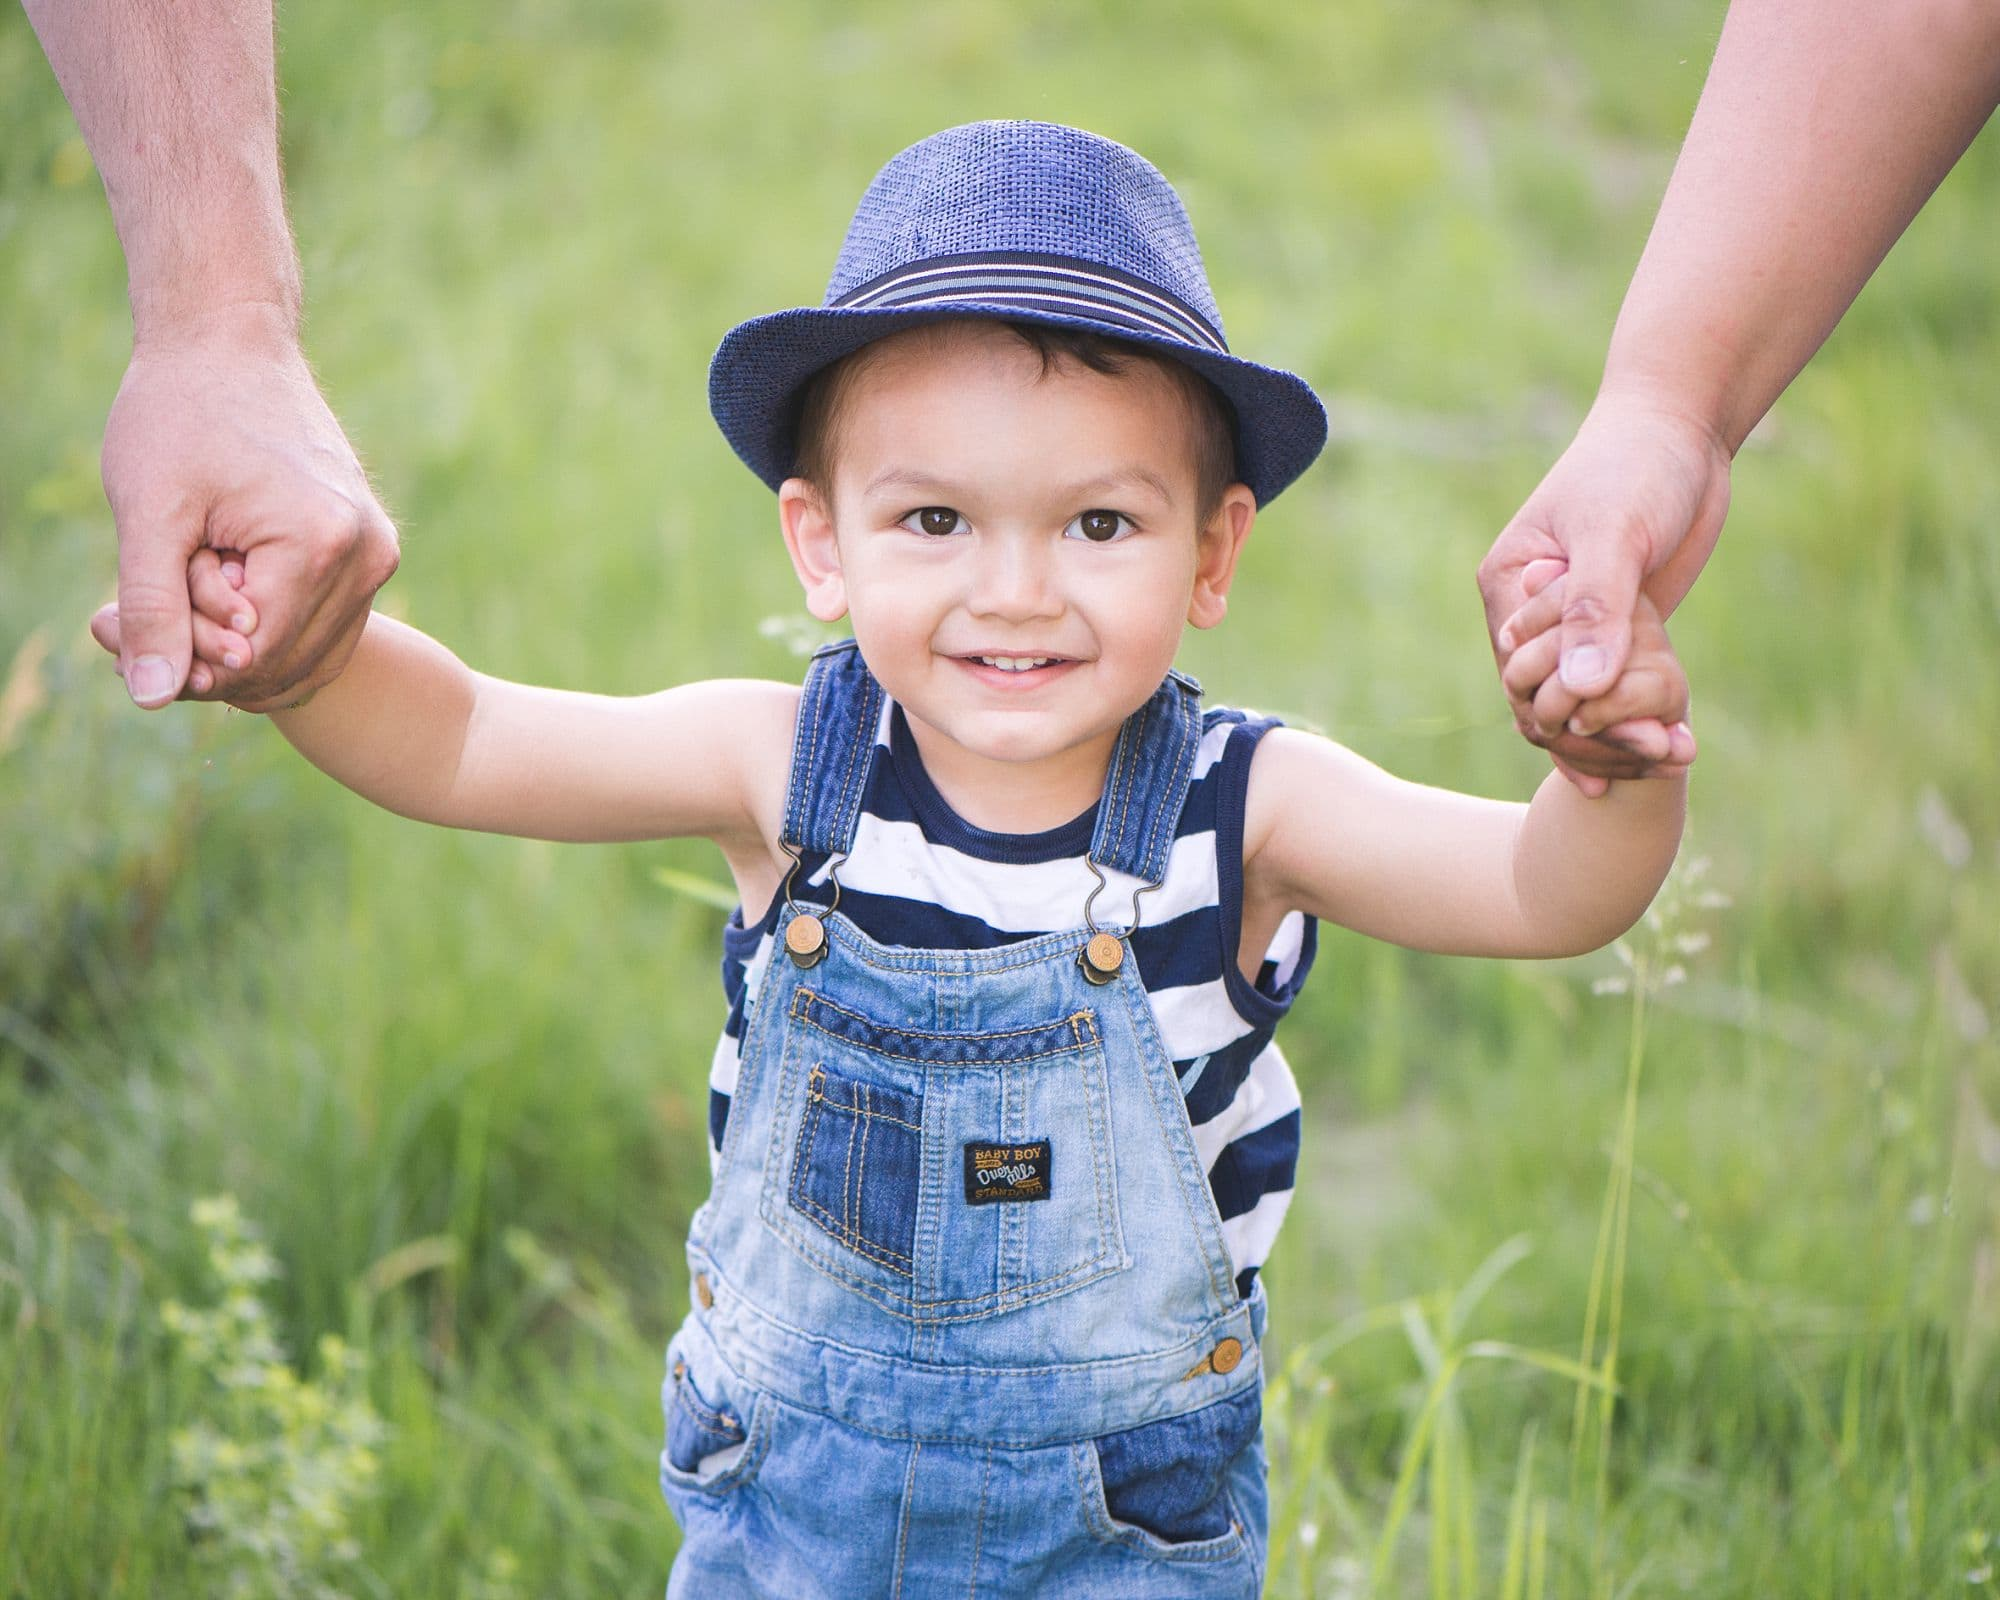 Adorable little boy in fedora and overalls holds mom and dad's hands on each side as he grins at the camera